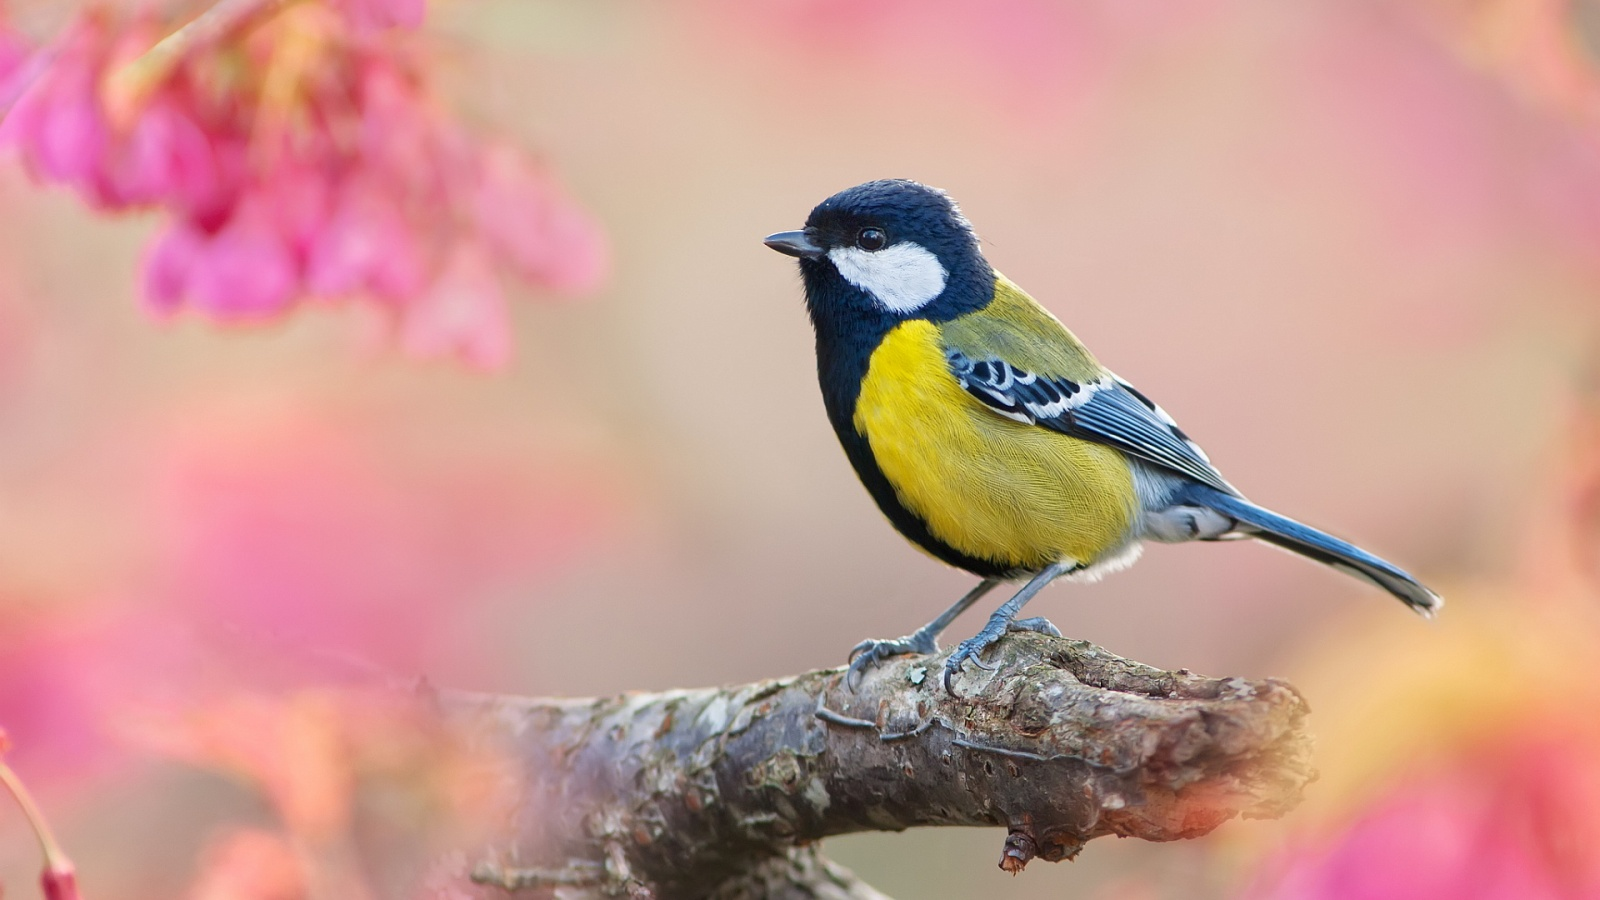 Description: The Wallpaper above is Male great titmouse Wallpaper in Resolution 1600x900. Choose your Resolution and Download Male great titmouse Wallpaper